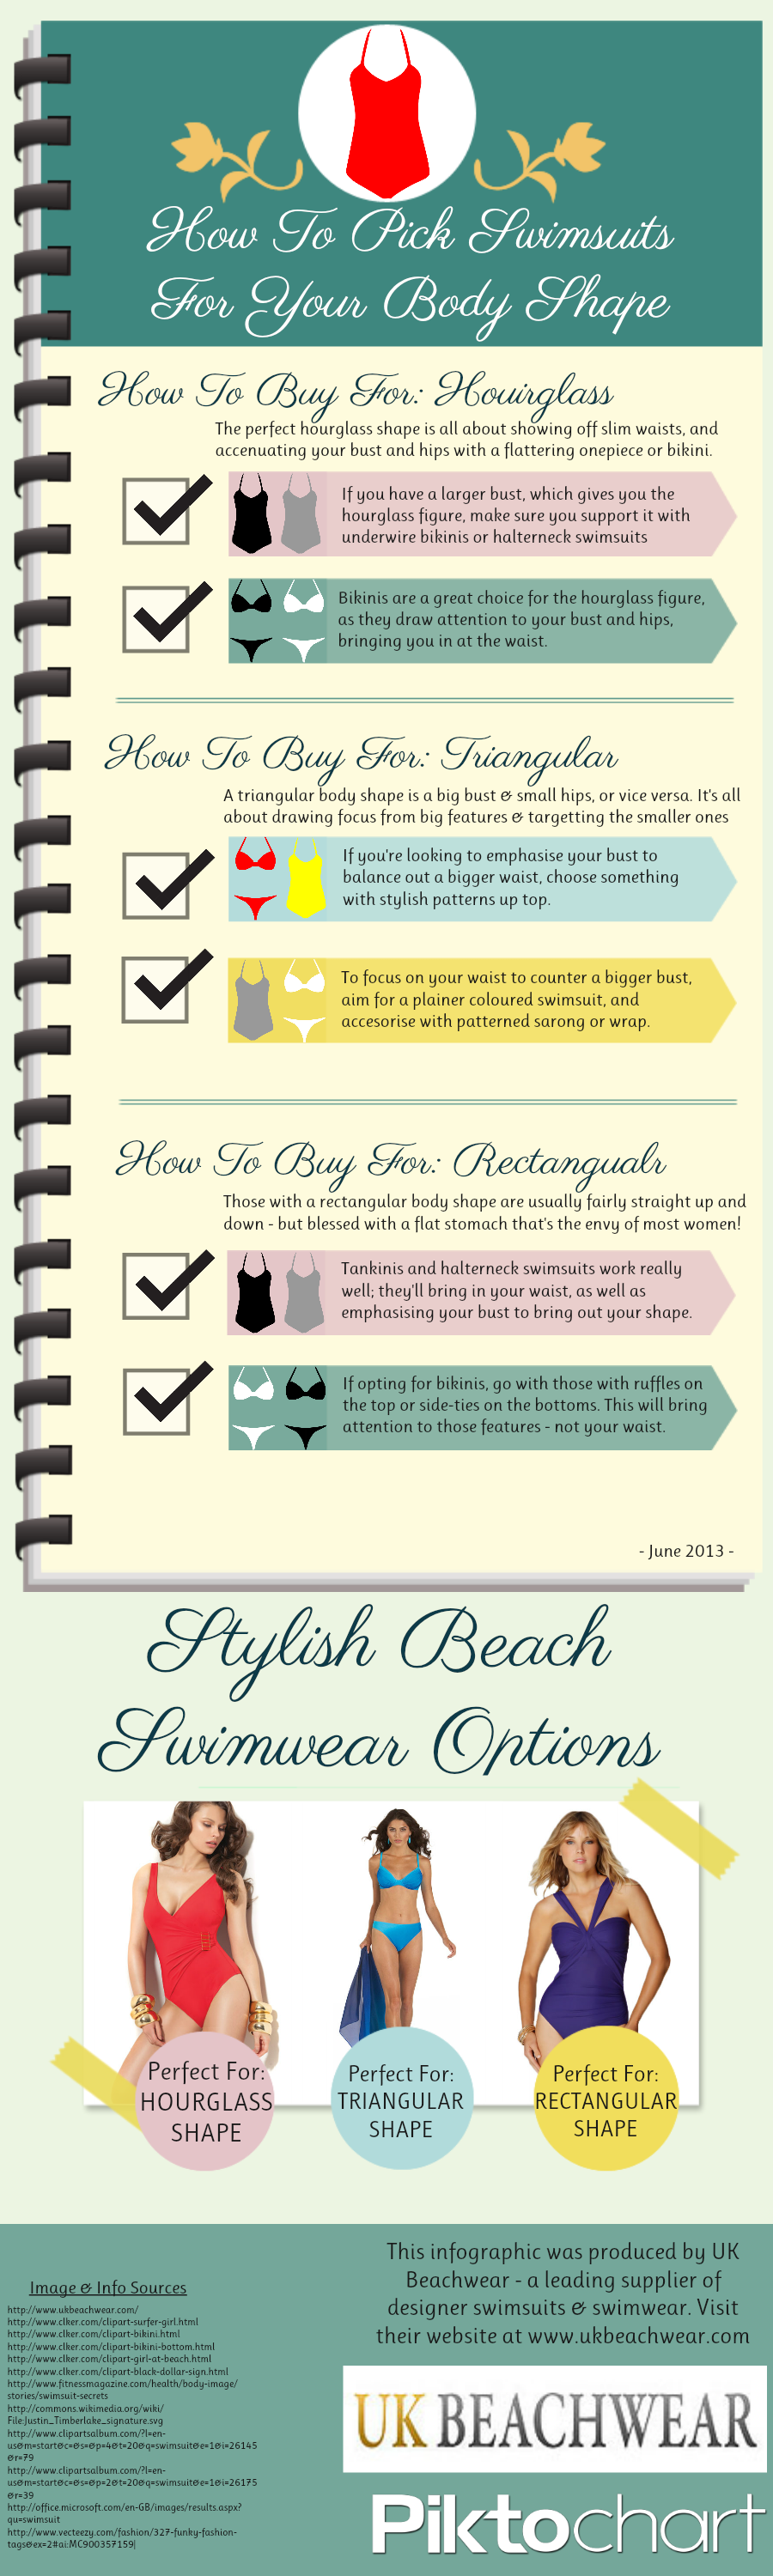 Perfect Swimsuits - How To Pick For Your Shape (Amended Version - May 2013)